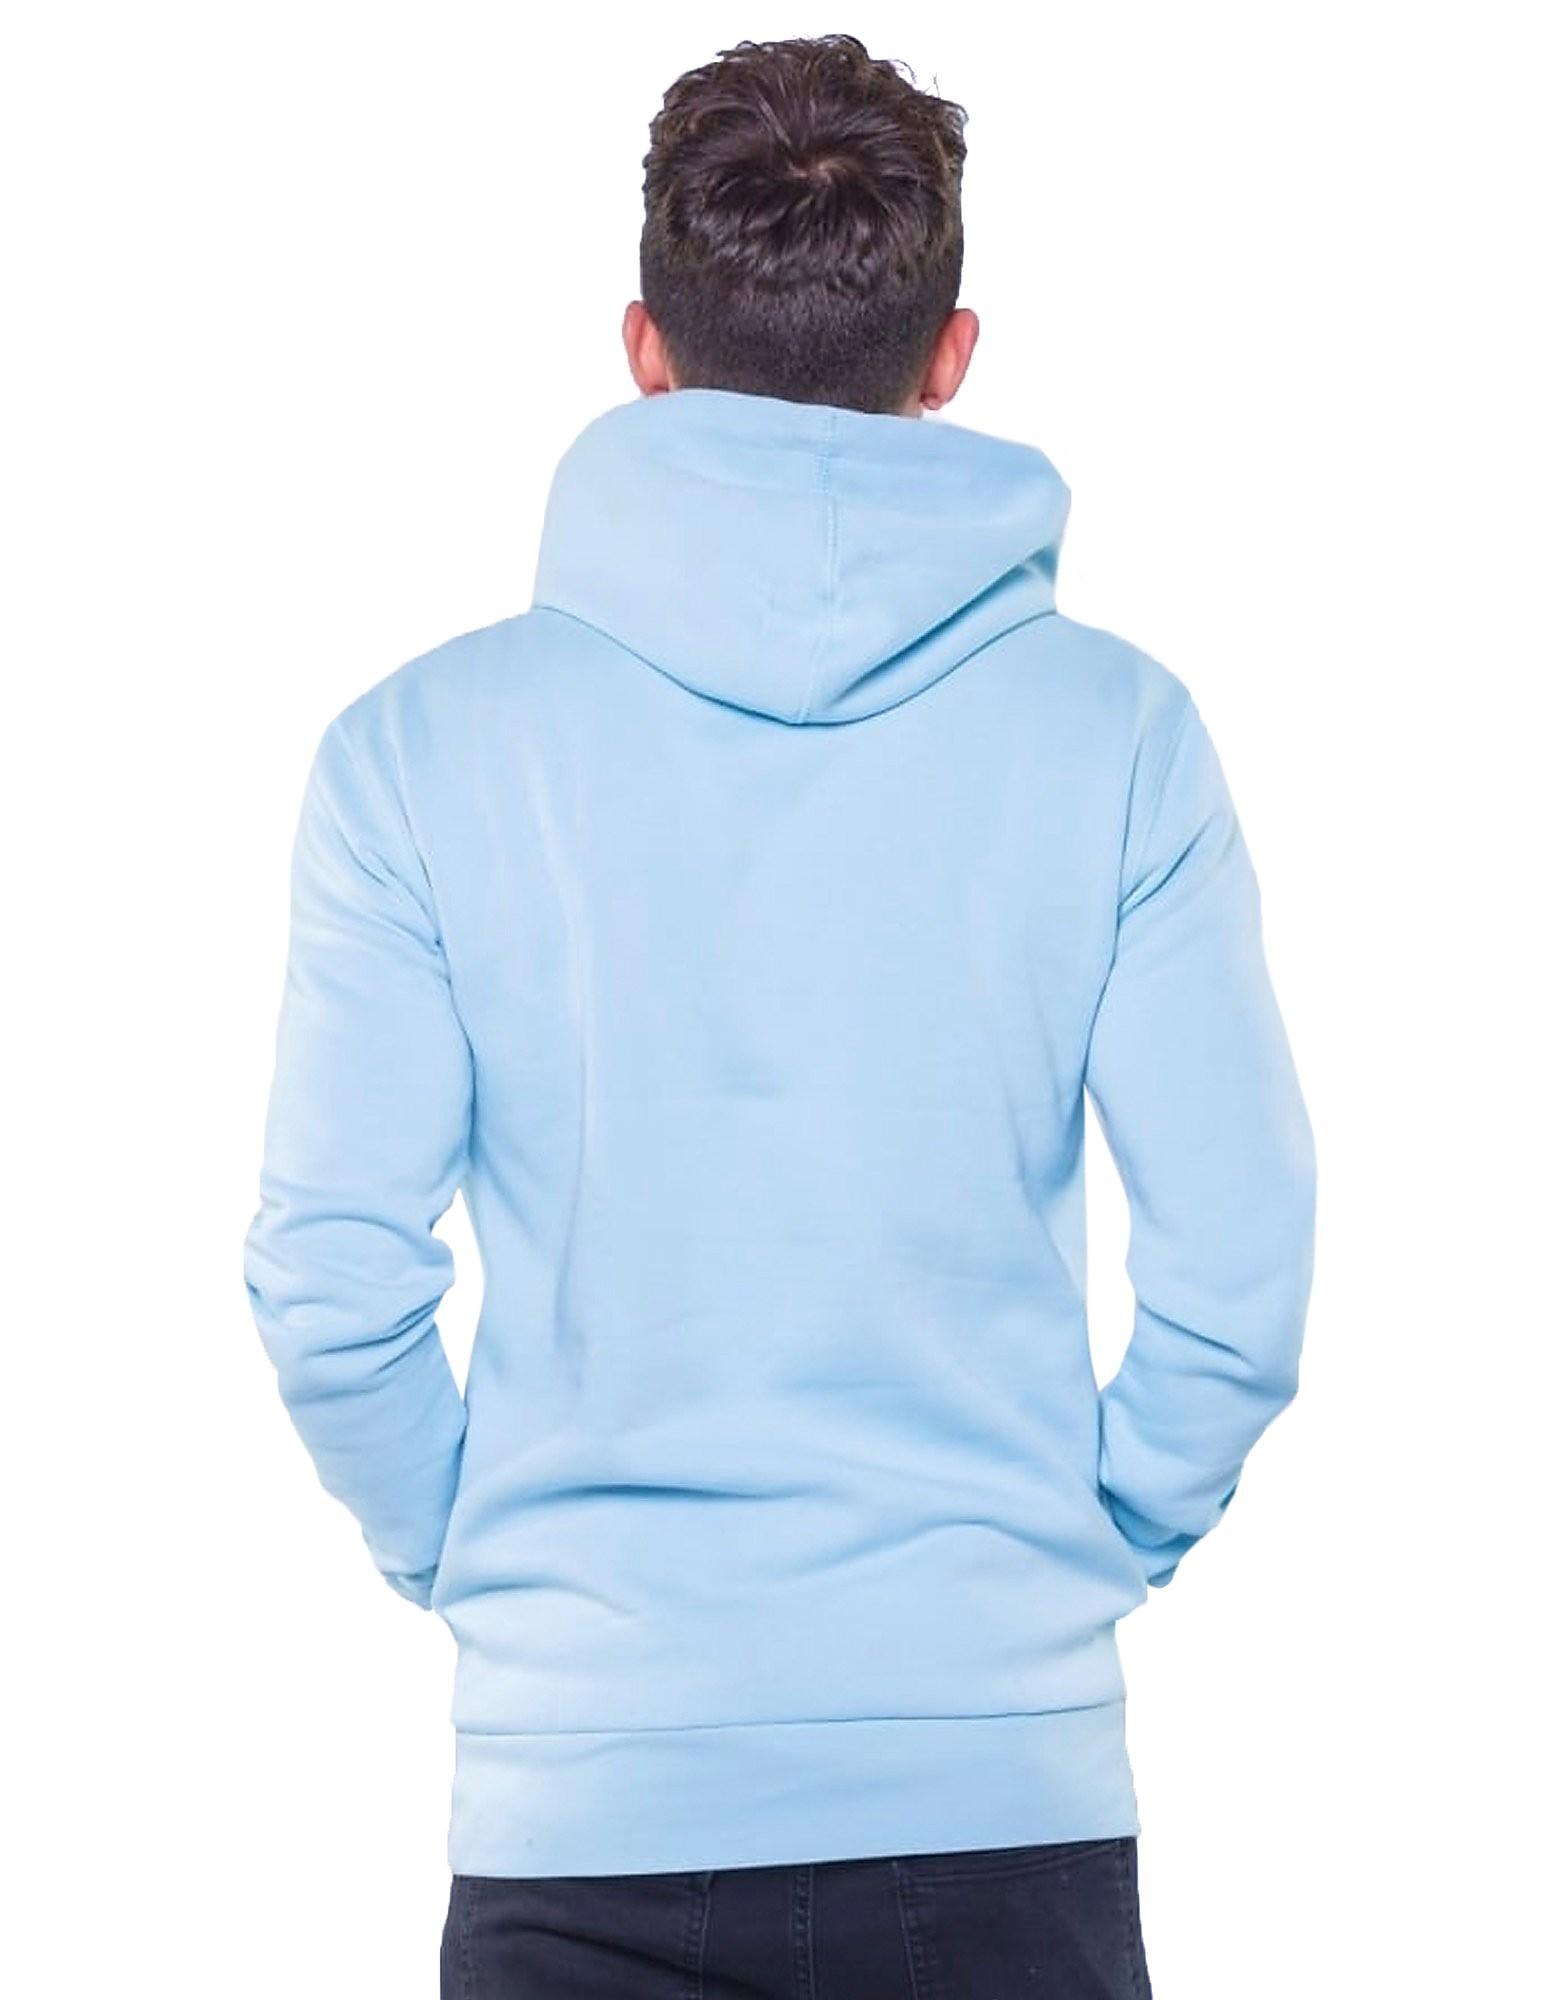 11 Degrees Core Hoody